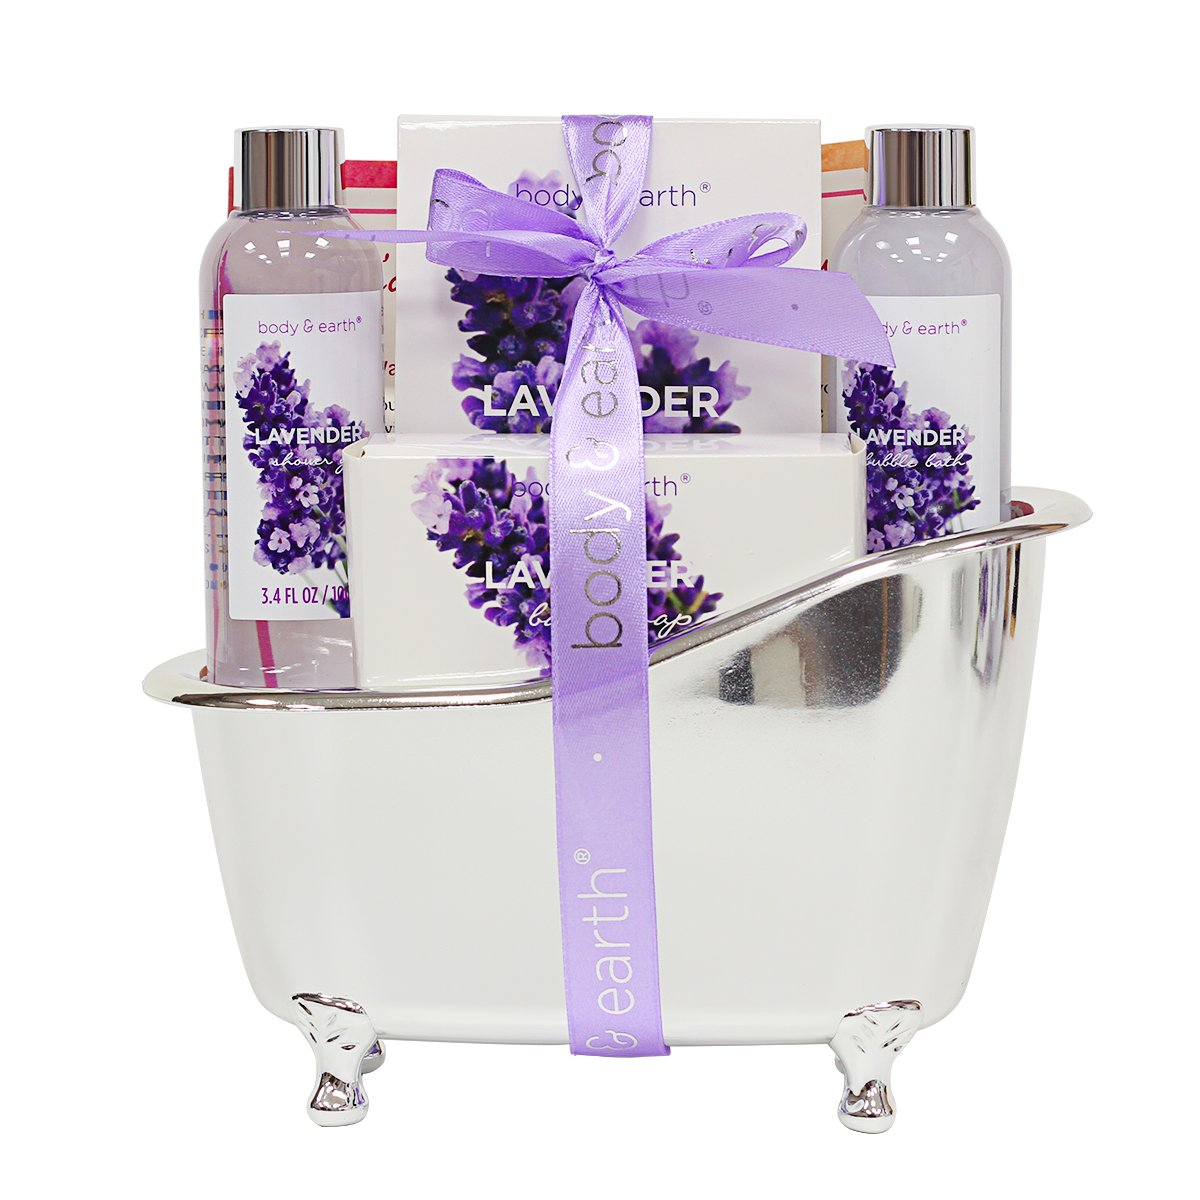 Bath Spa Gift Basket for Women, Body & Earth Lavender Scented 4 Pcs Home Spa Gift Kit with Shower Gel, Bubble Bath, Bath Salts and Bath Soap, Best Gift for Her by BODY & EARTH